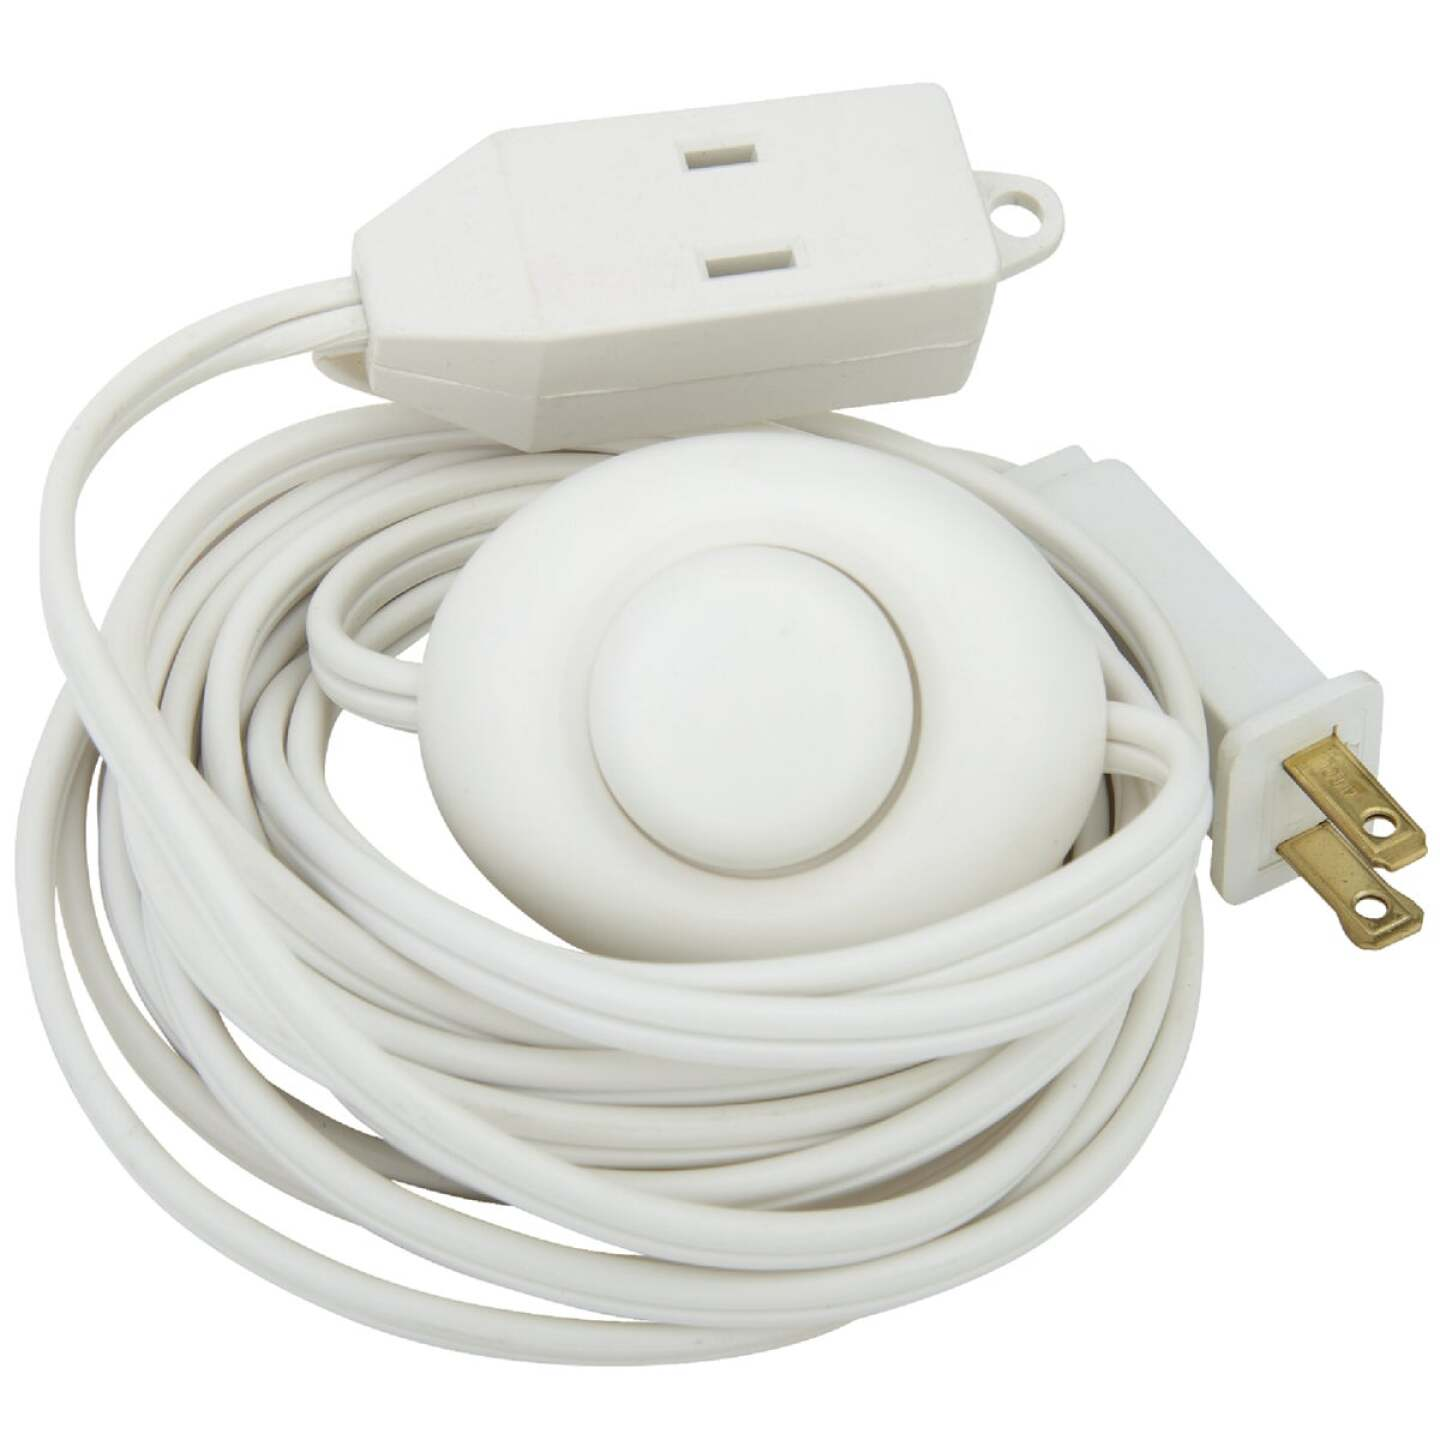 Do it 15 Ft. 18/2 White Extension Cord with Foot Switch Image 4